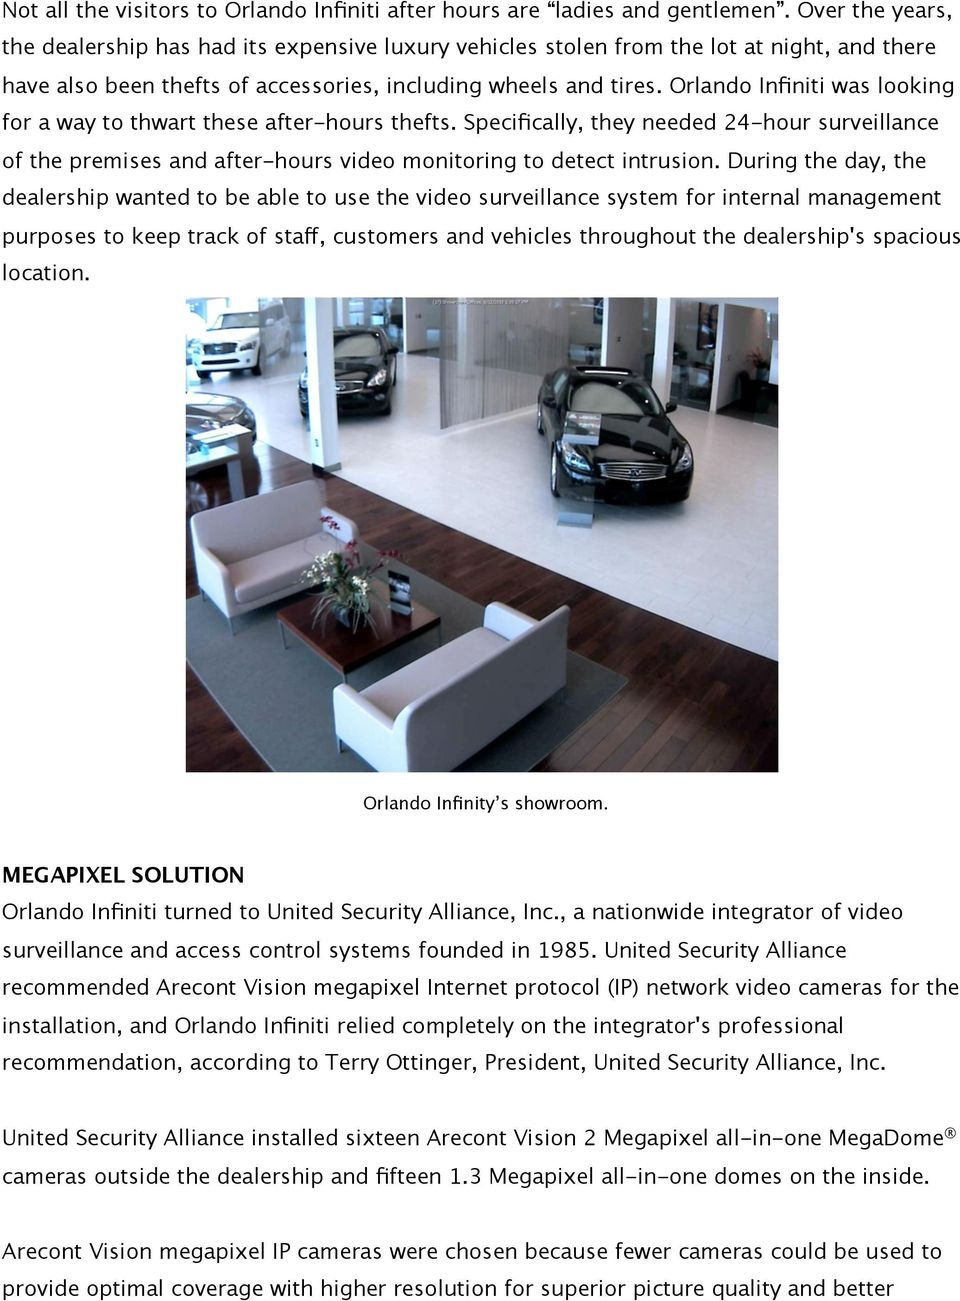 Orlando Infiniti was looking for a way to thwart these after-hours thefts. Specifically, they needed 24-hour surveillance of the premises and after-hours video monitoring to detect intrusion.